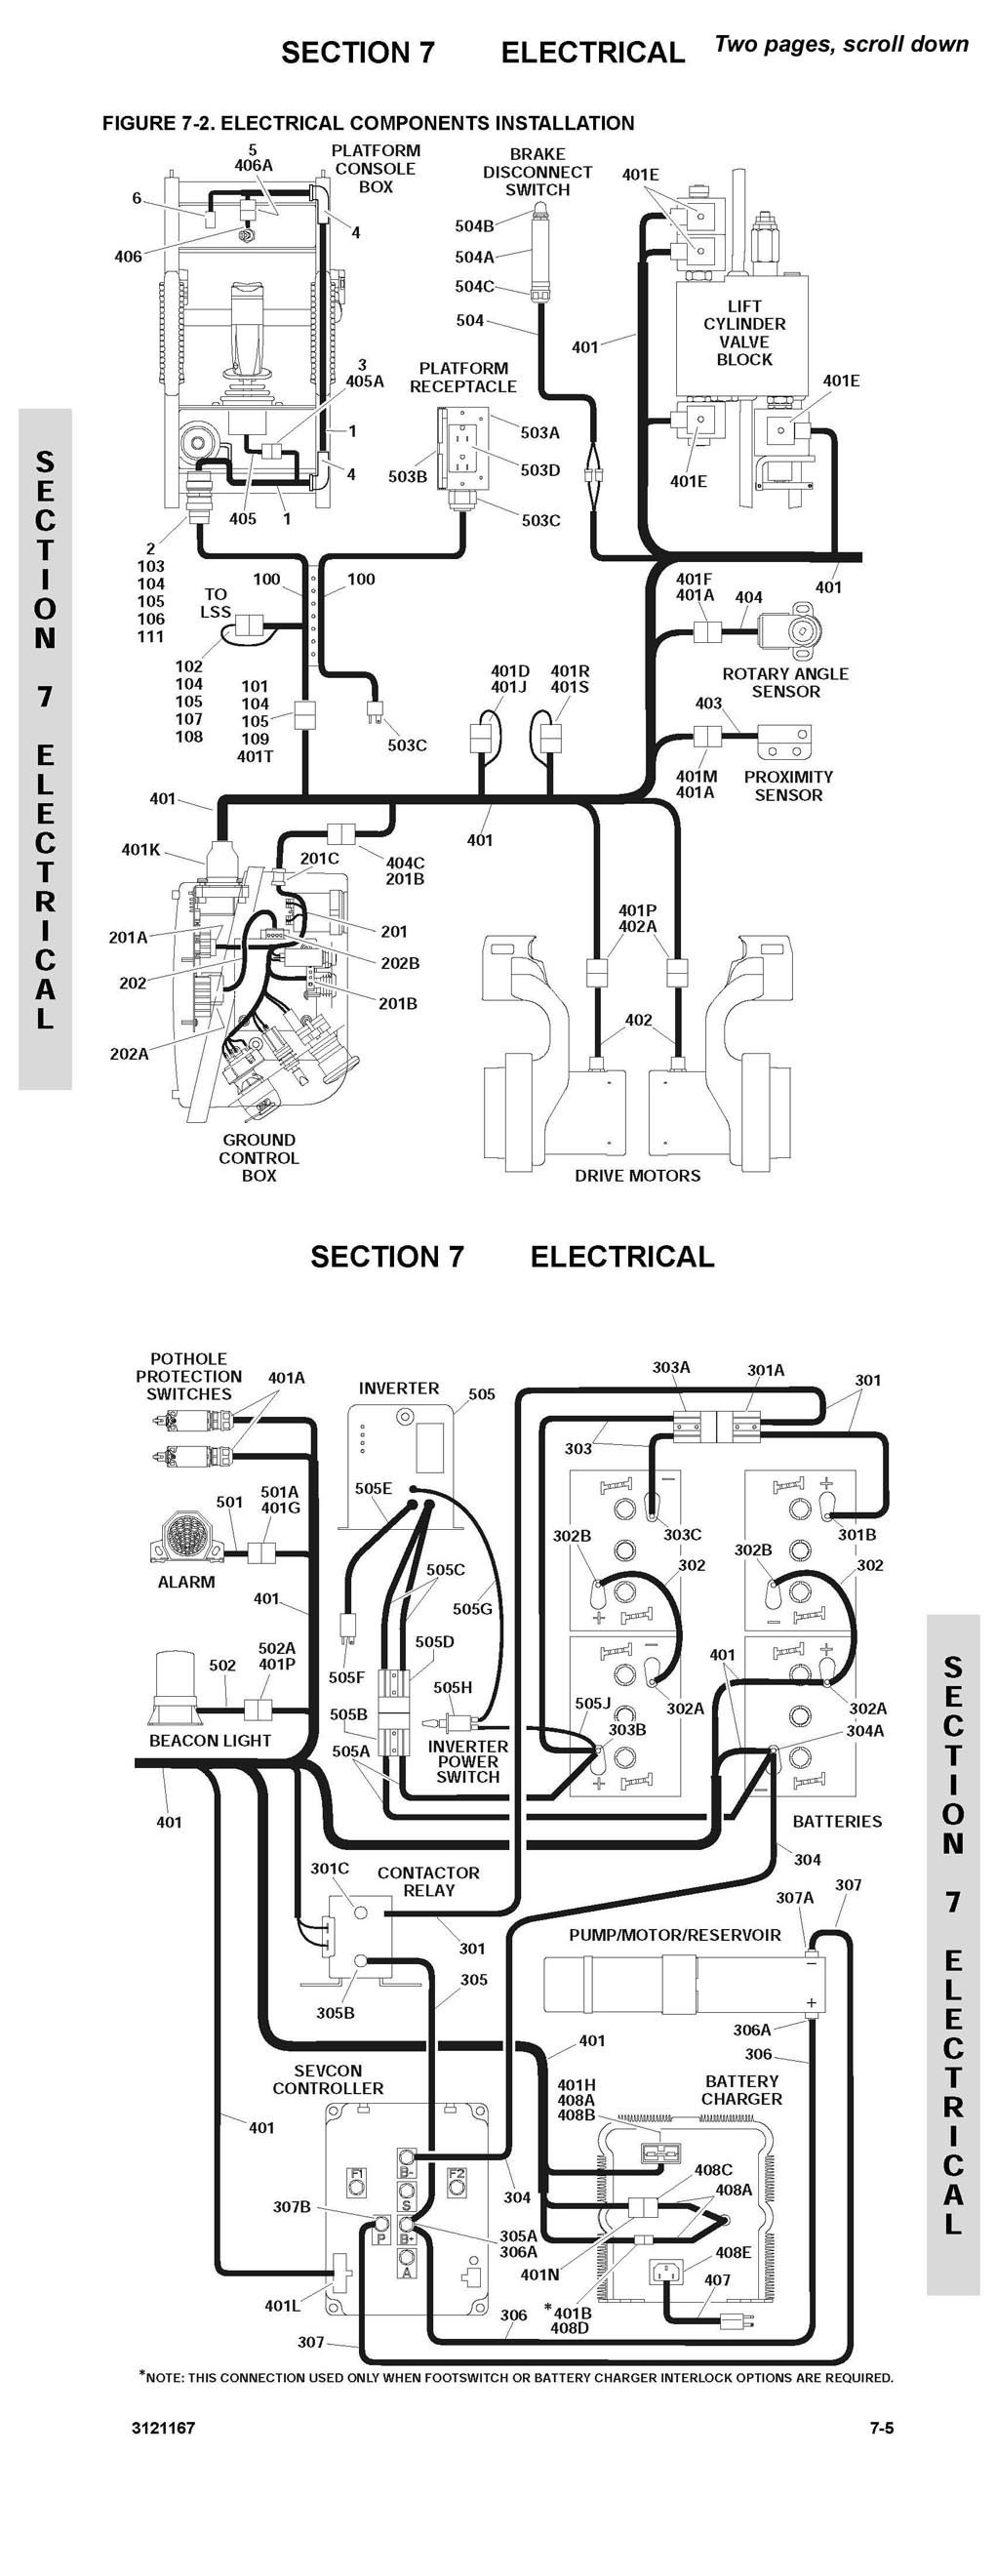 jlg 40h wiring diagram wiring diagramjlg 40e battery wiring diagram wiring schematic diagramjlg battery wiring diagram wiring diagram jlg 40h wiring